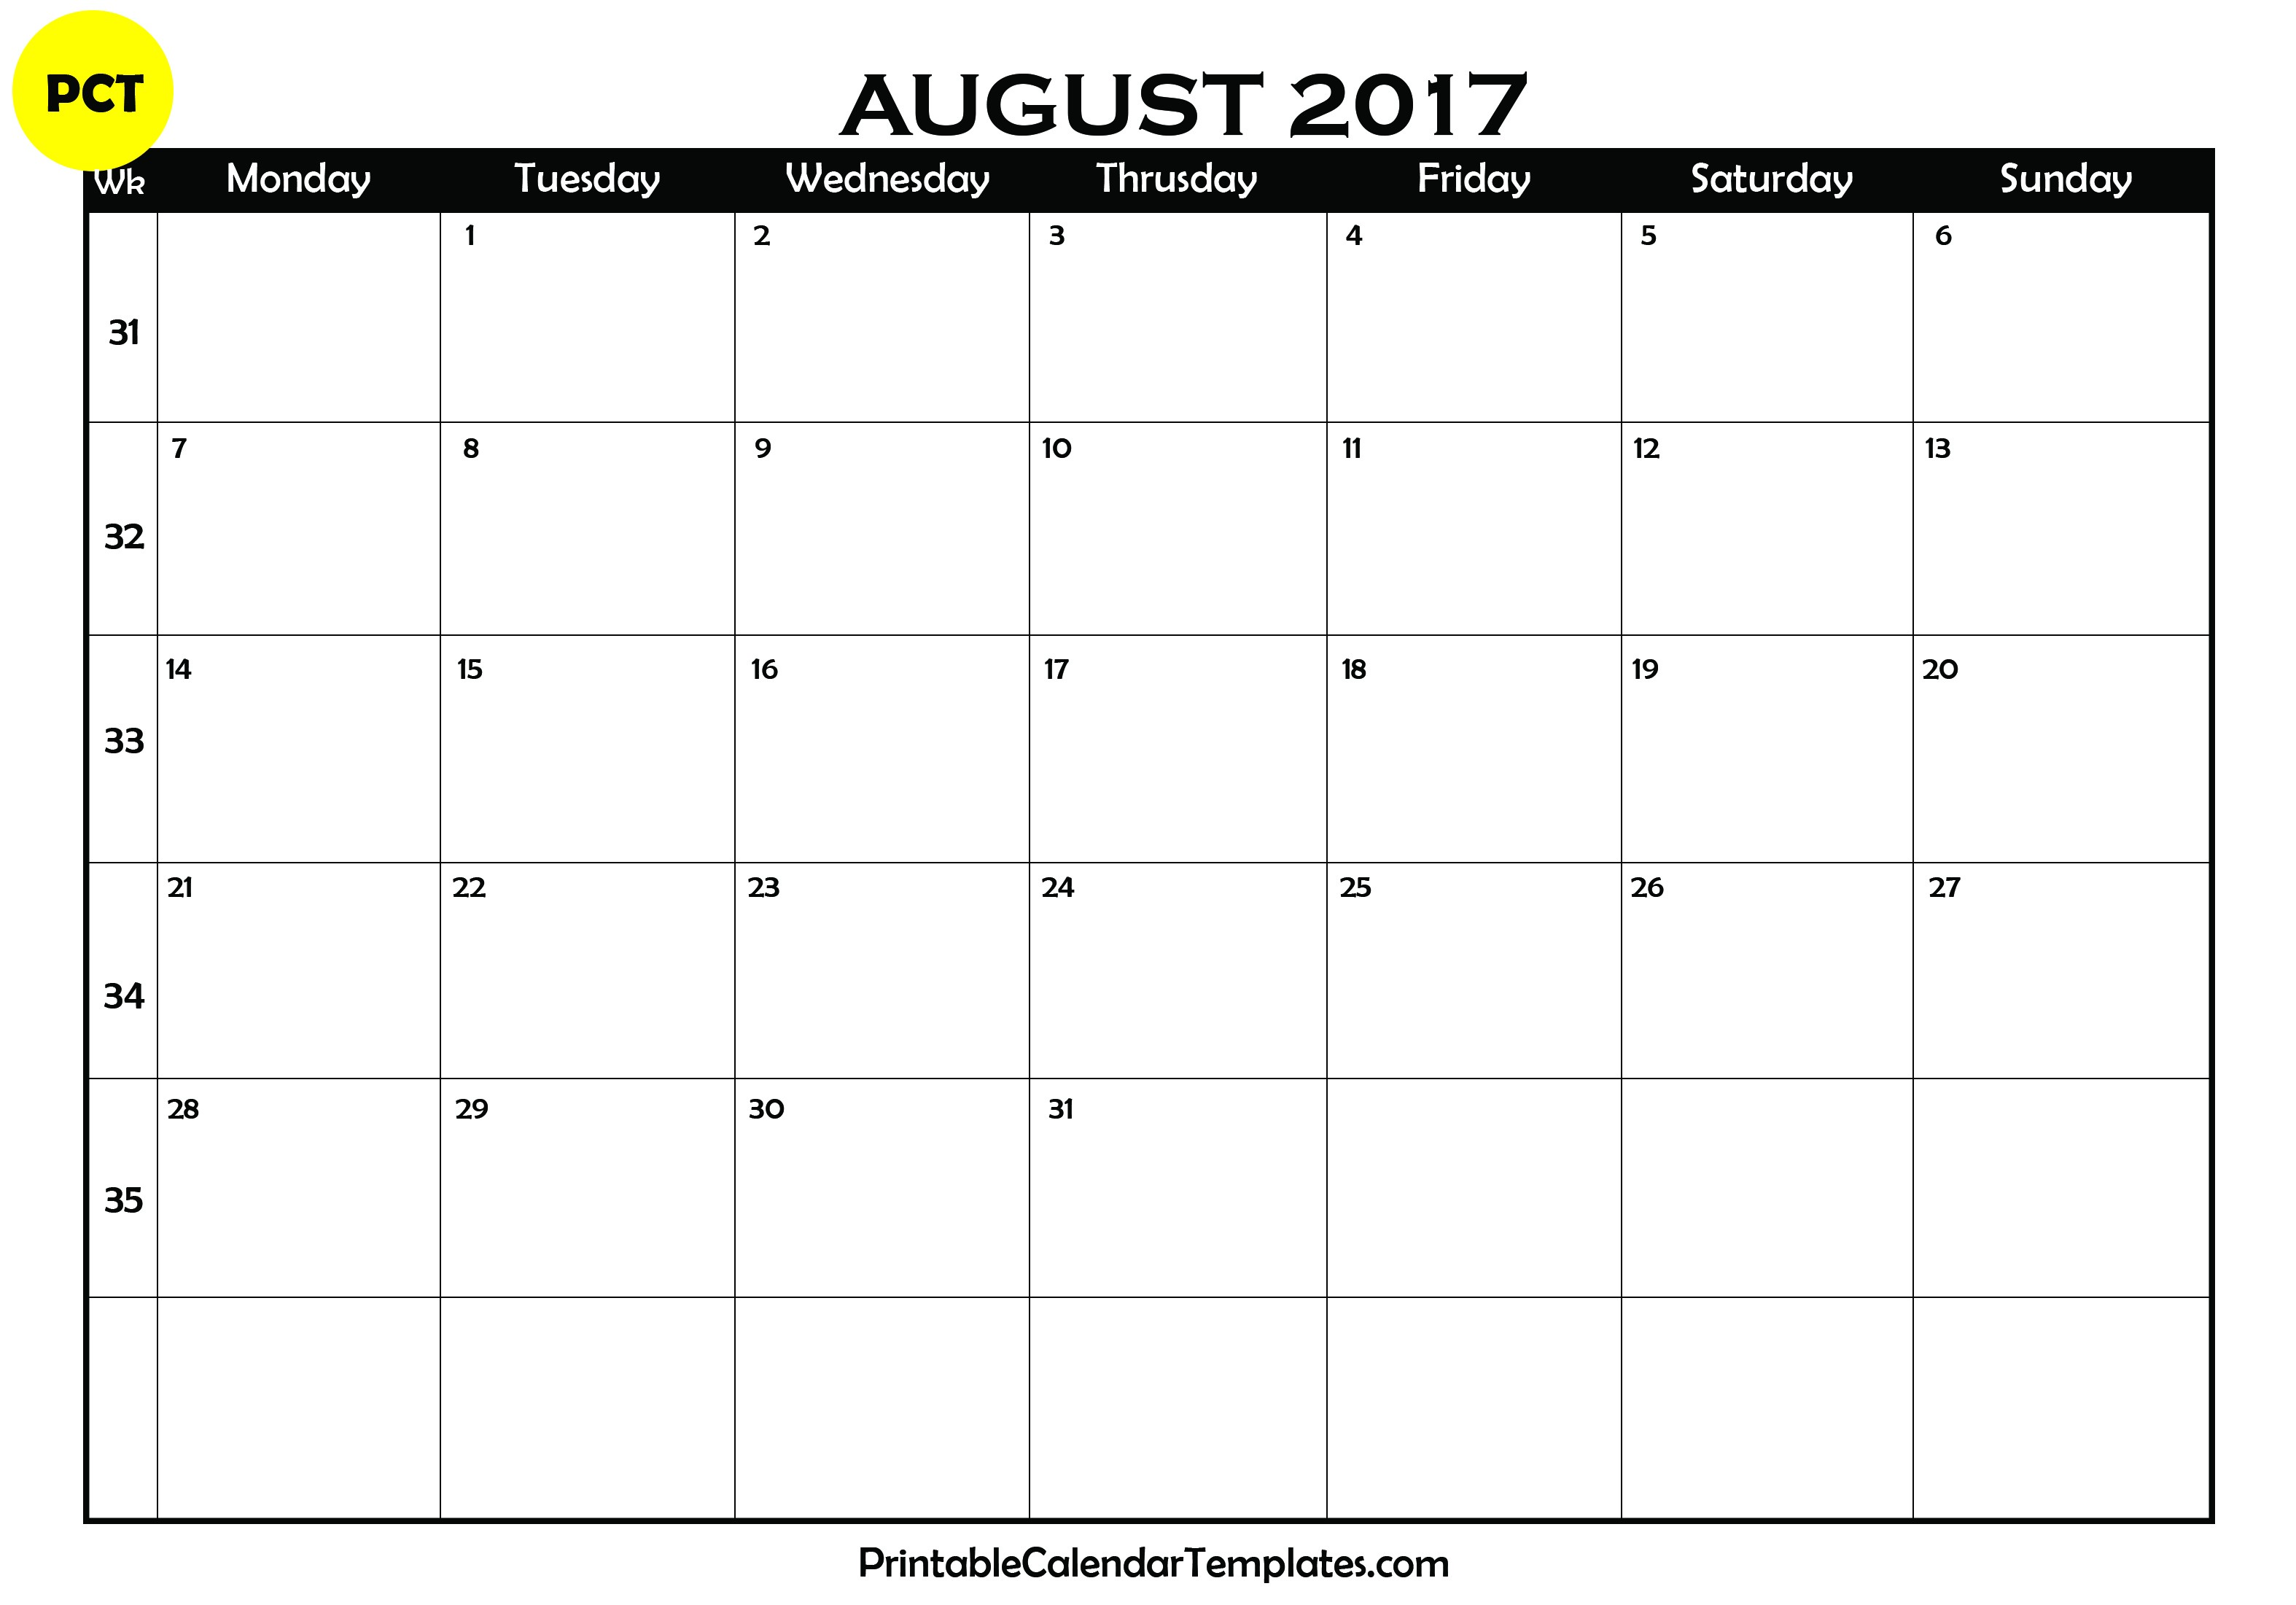 October 2017 Calendar Canada Holidays Archives - CALENDAR ...